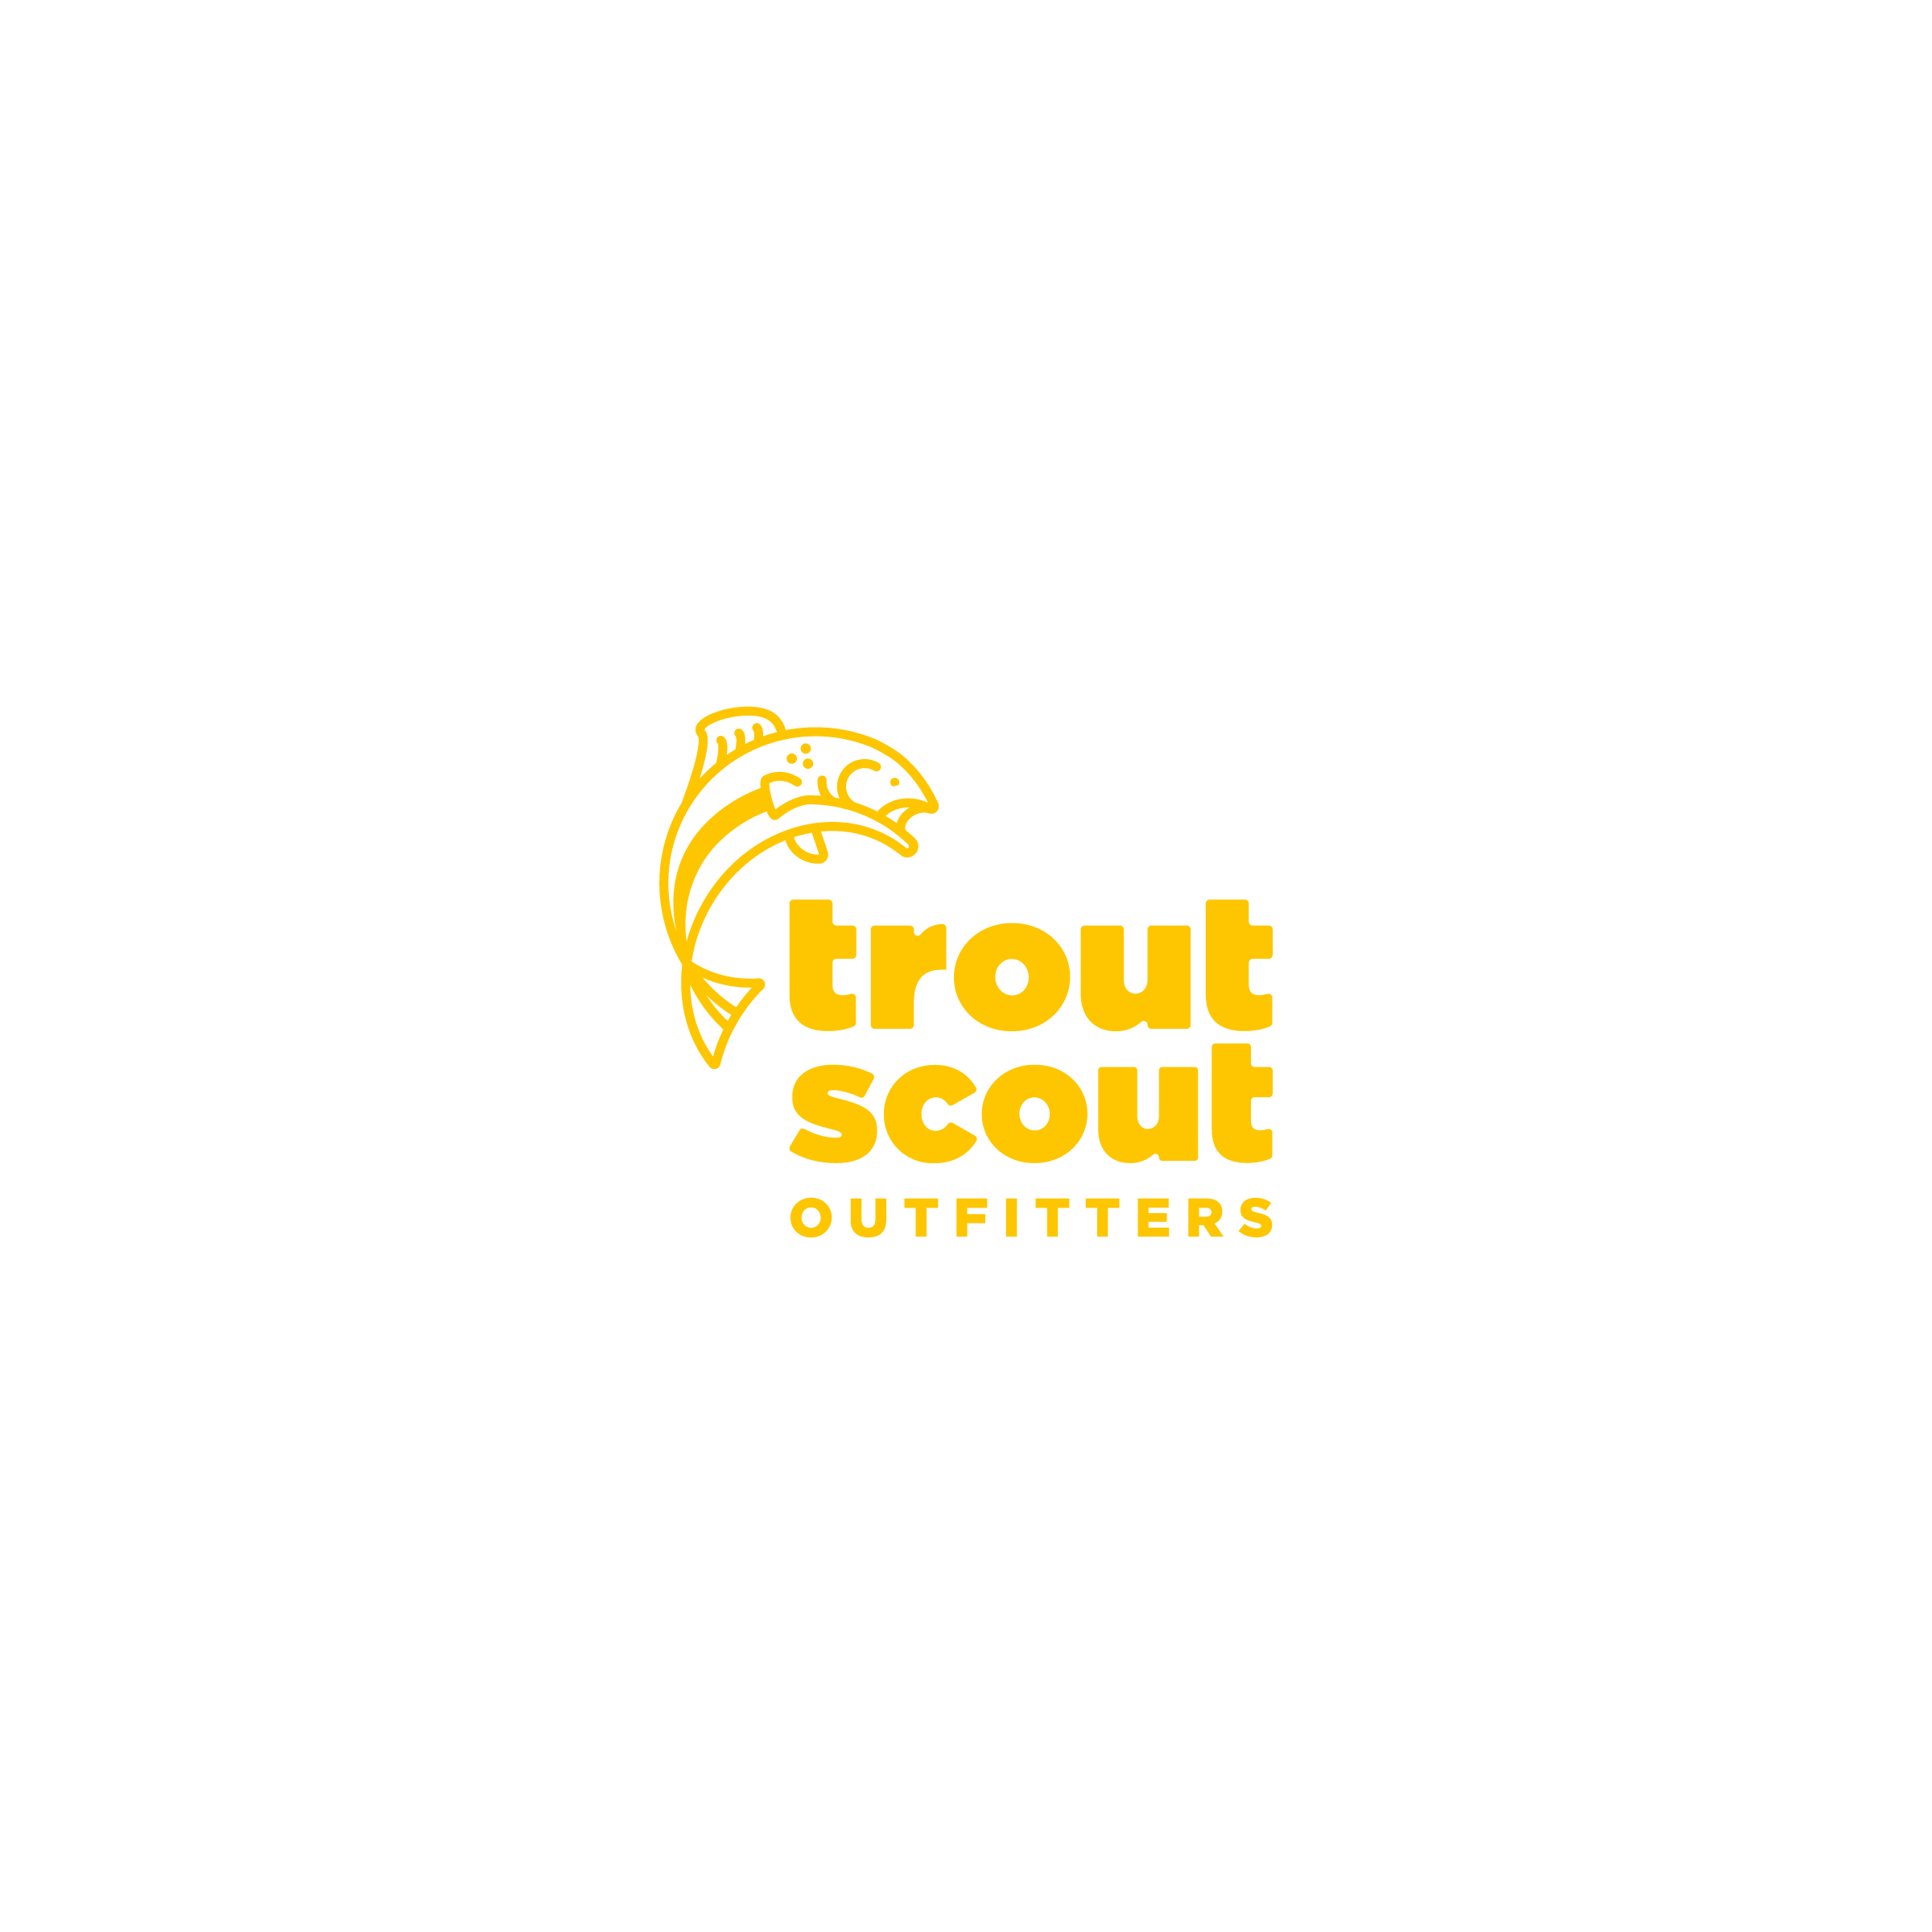 TroutScoutOutfitters_Yellow_Vert.jpg